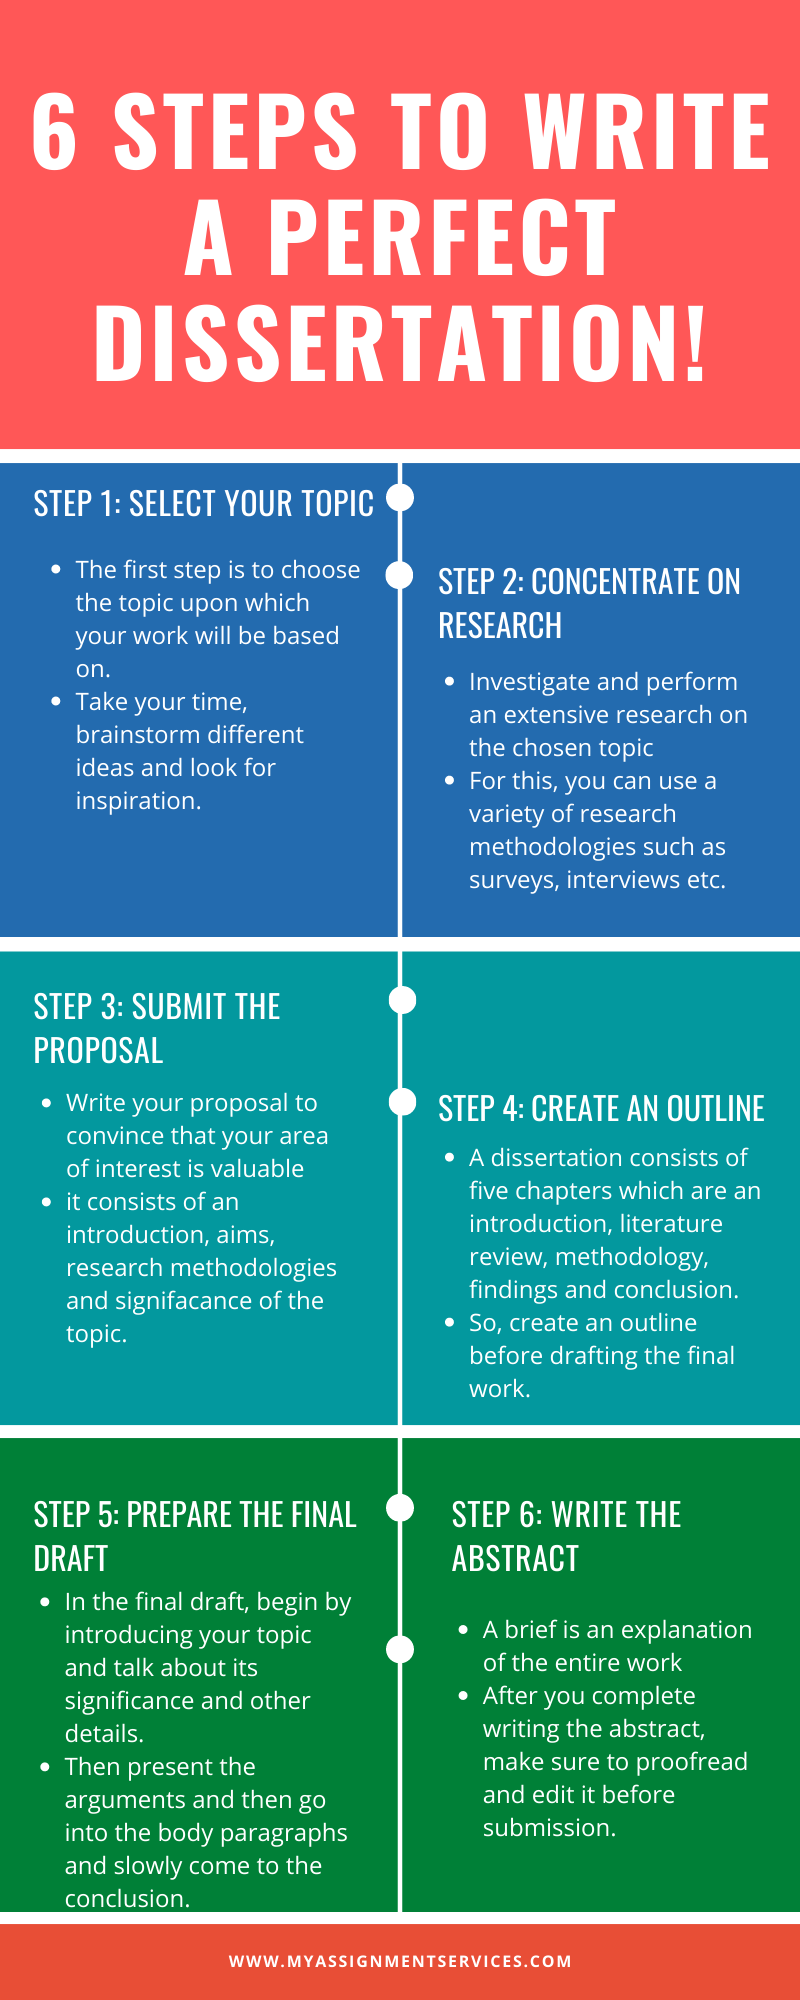 6 steps to write a dissertation